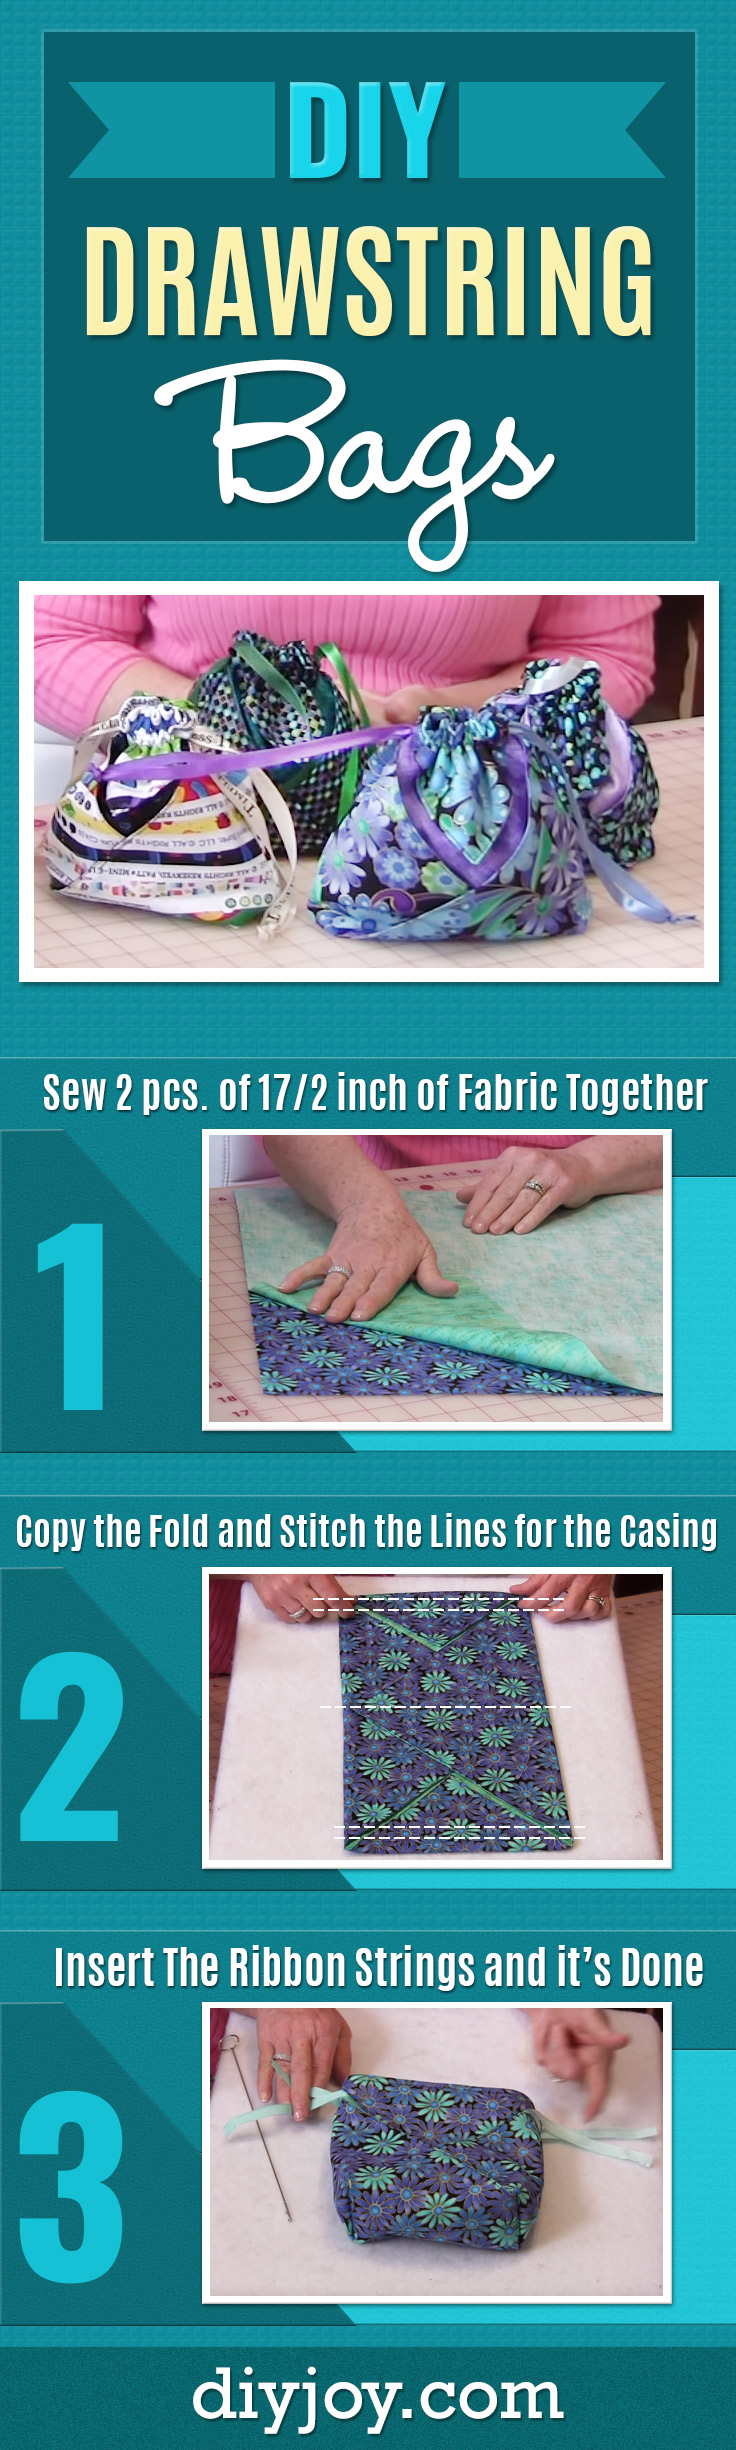 DIY Drawstring Bags - Quick and Easy Sewing Projects for Beginners - How to Sew An Easy Bag - Youtube Tutorial Video